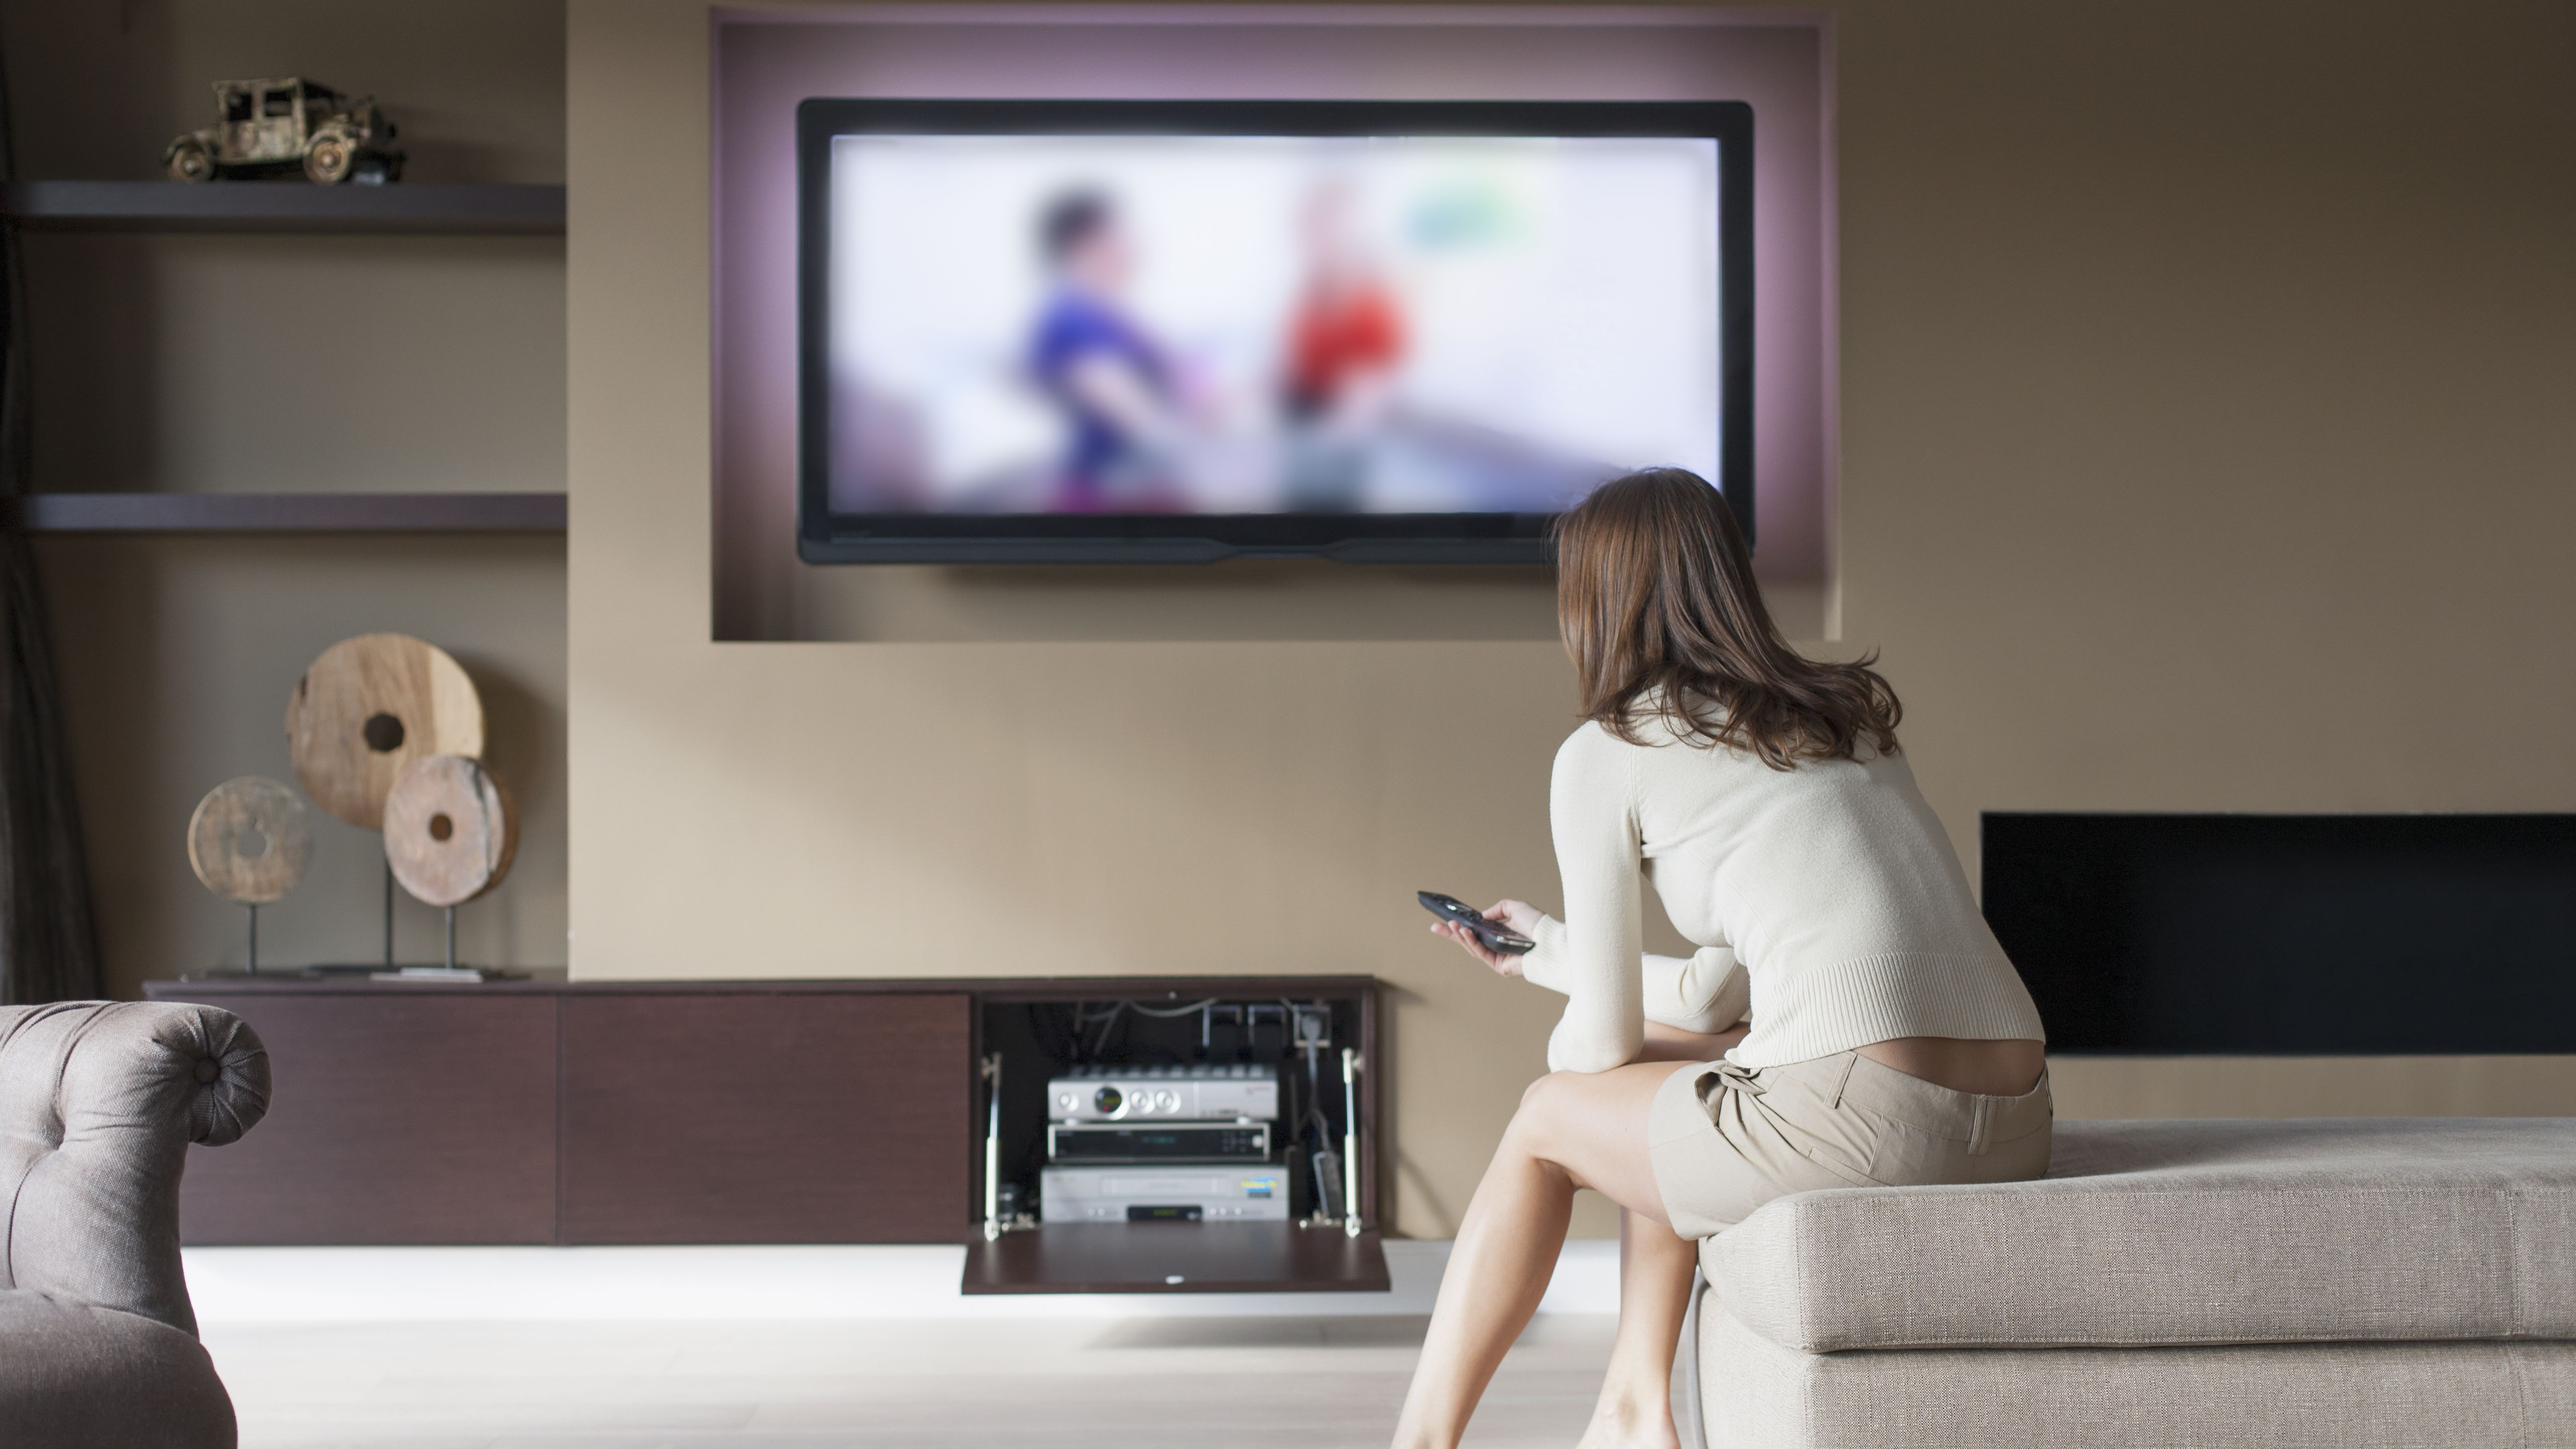 Can VCRs and LCD TVs Work Together?